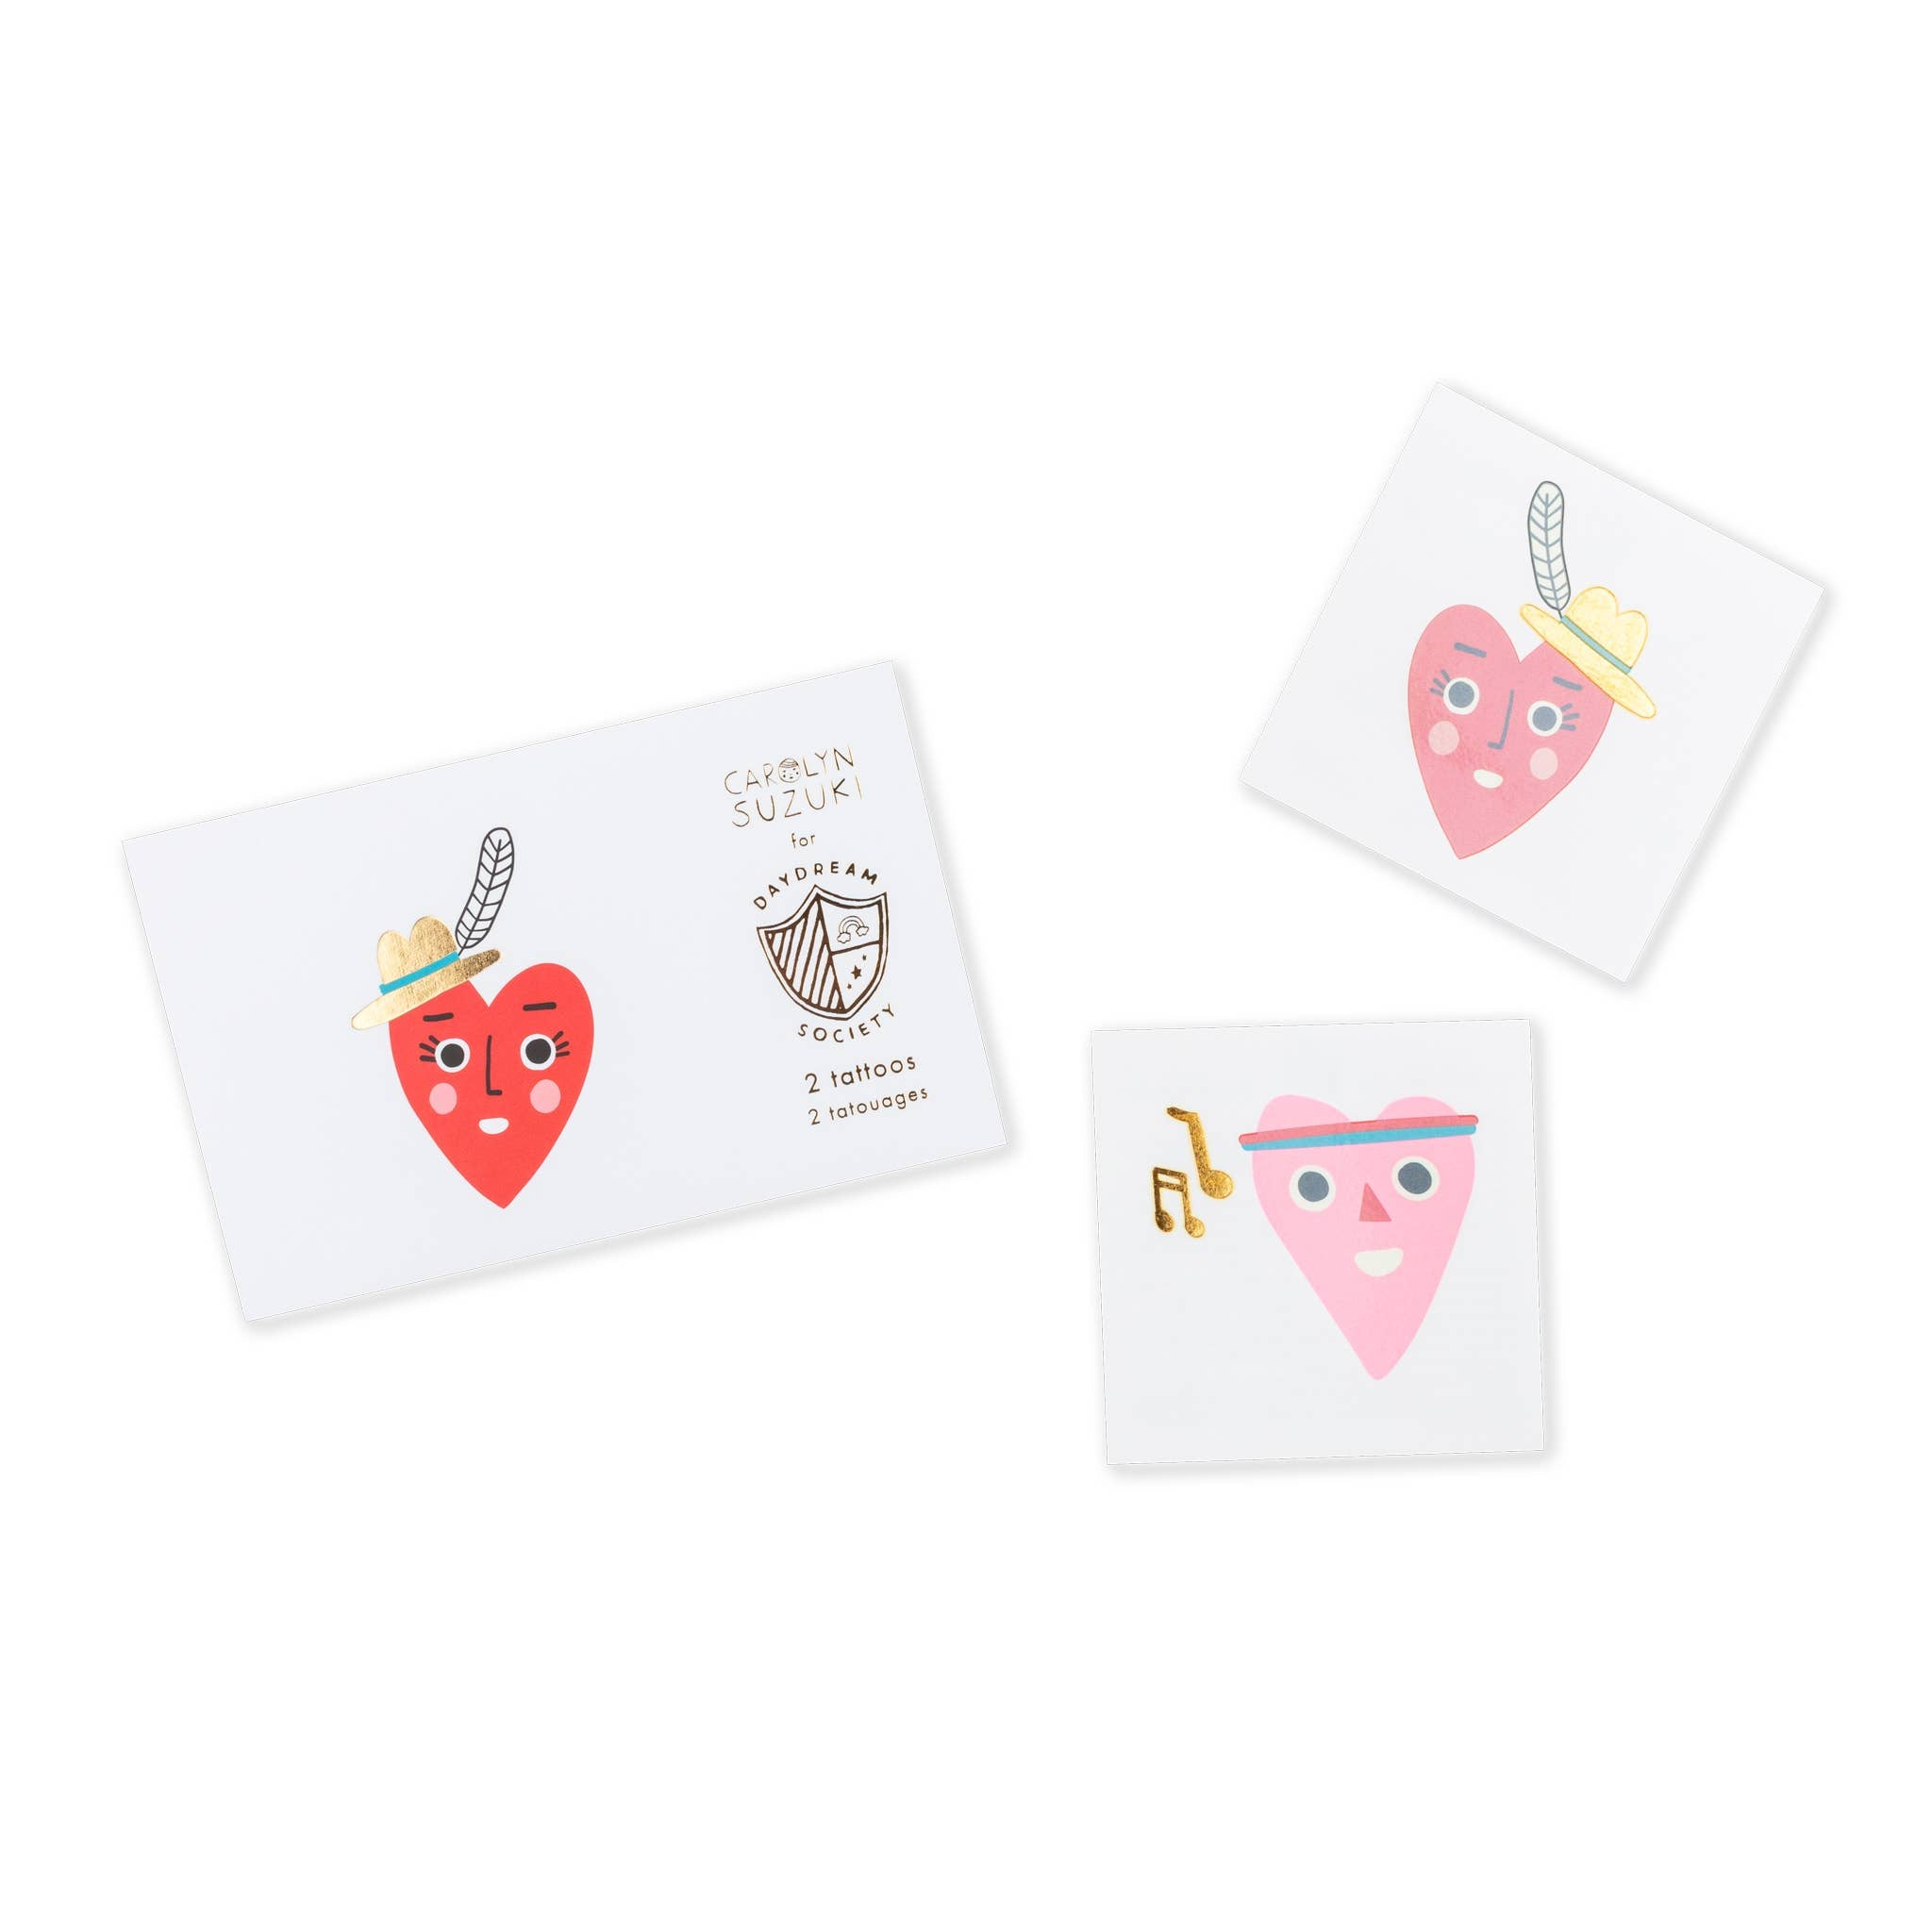 Heartbeat Gang Temporary Tattoos